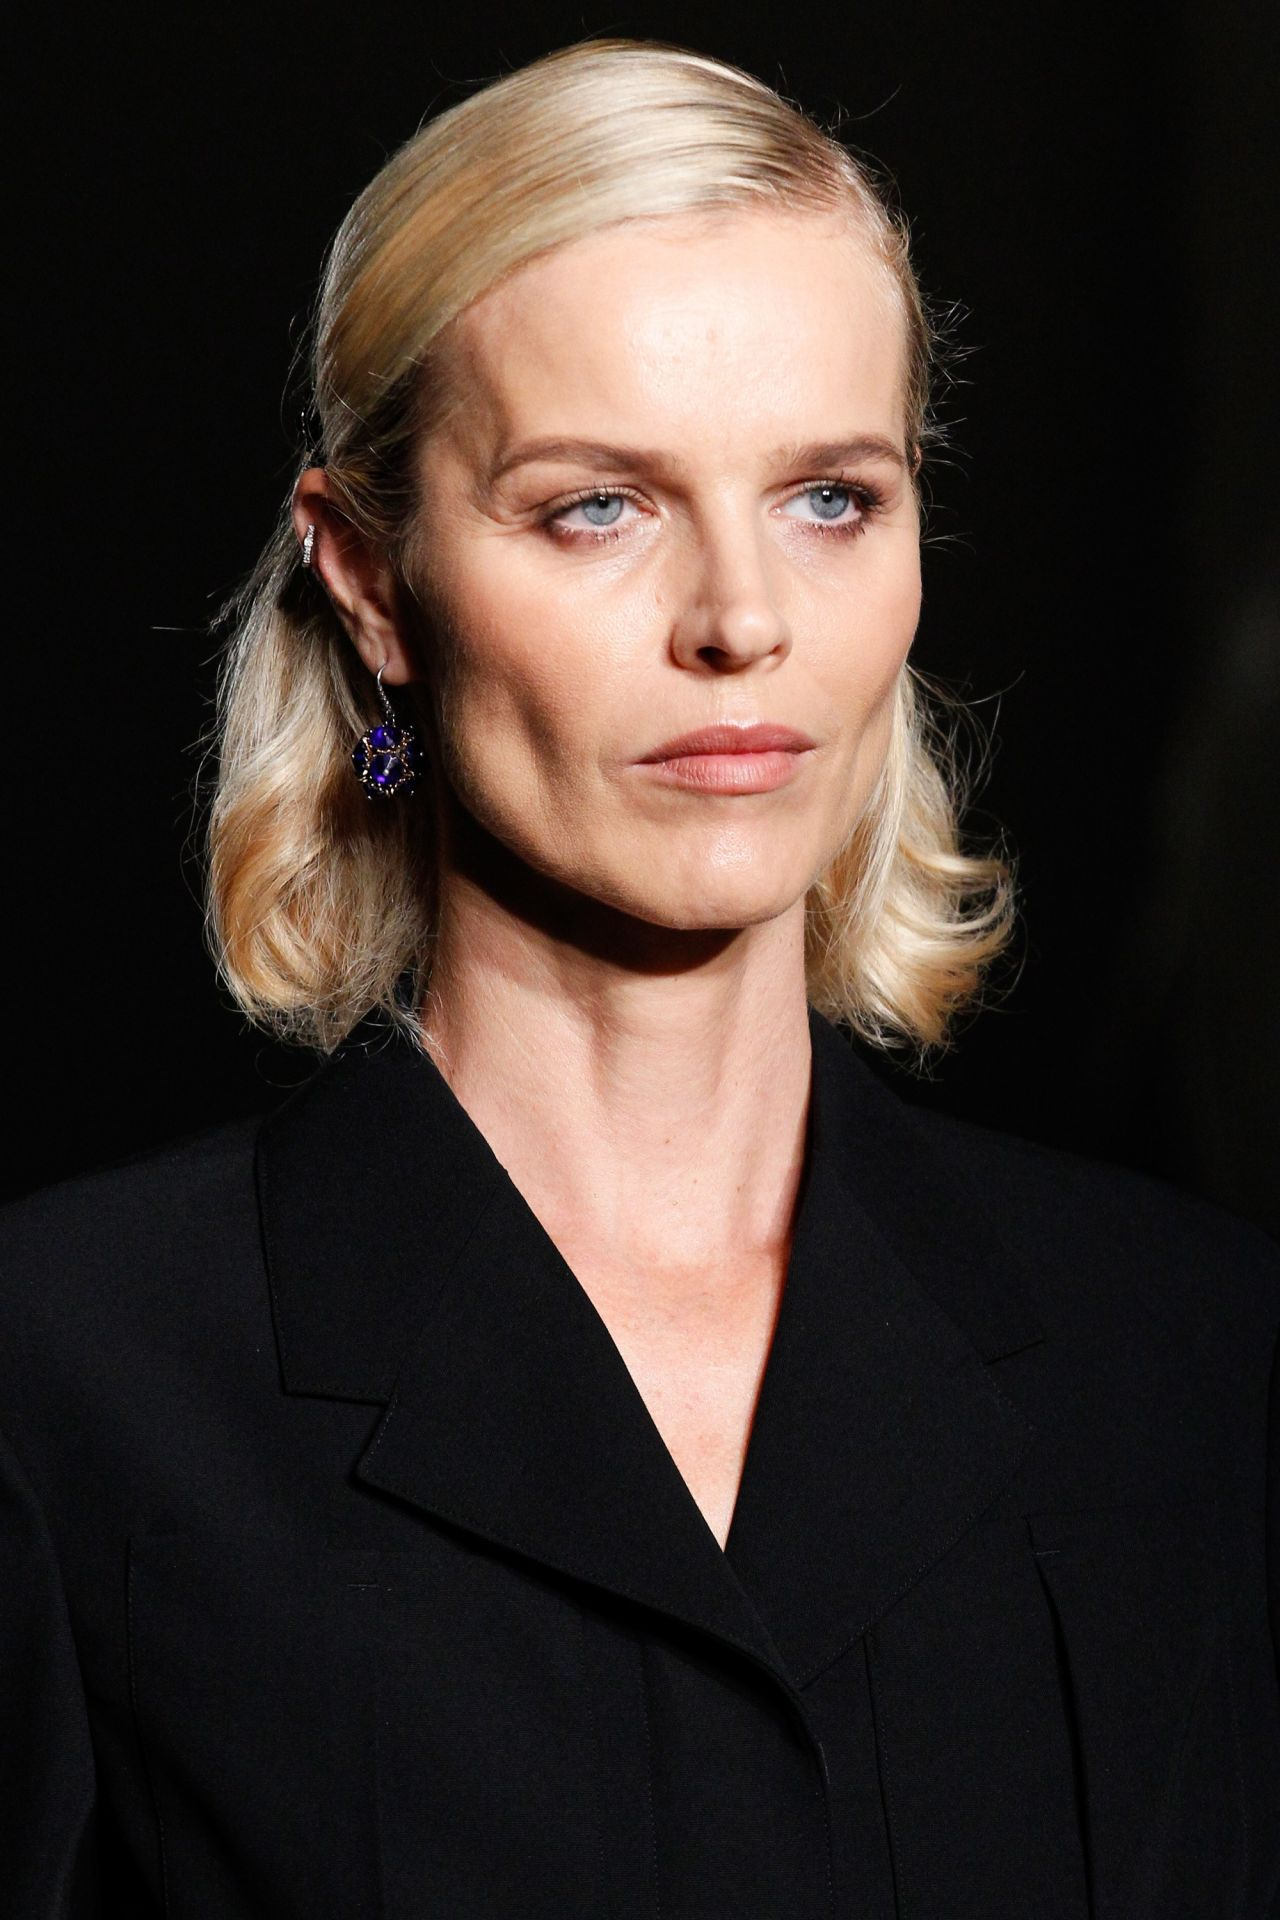 Eva Herzigova  Bottega Veneta S/S 2017 Show in Milan - Colorful Hairstyles